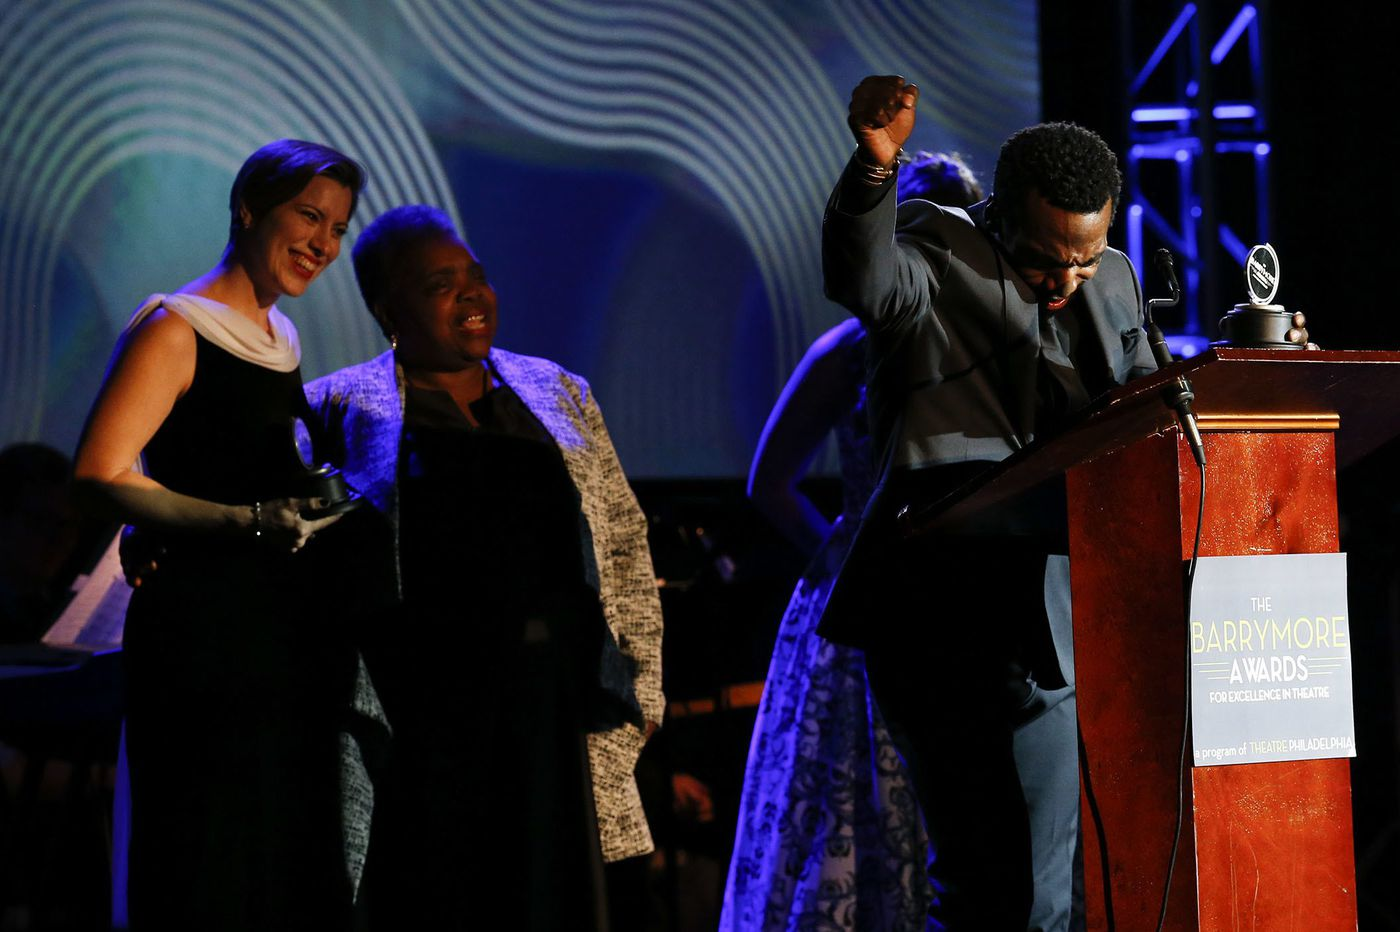 Barrymore Awards: Dulé Hill, People's Light, and Arden big winners